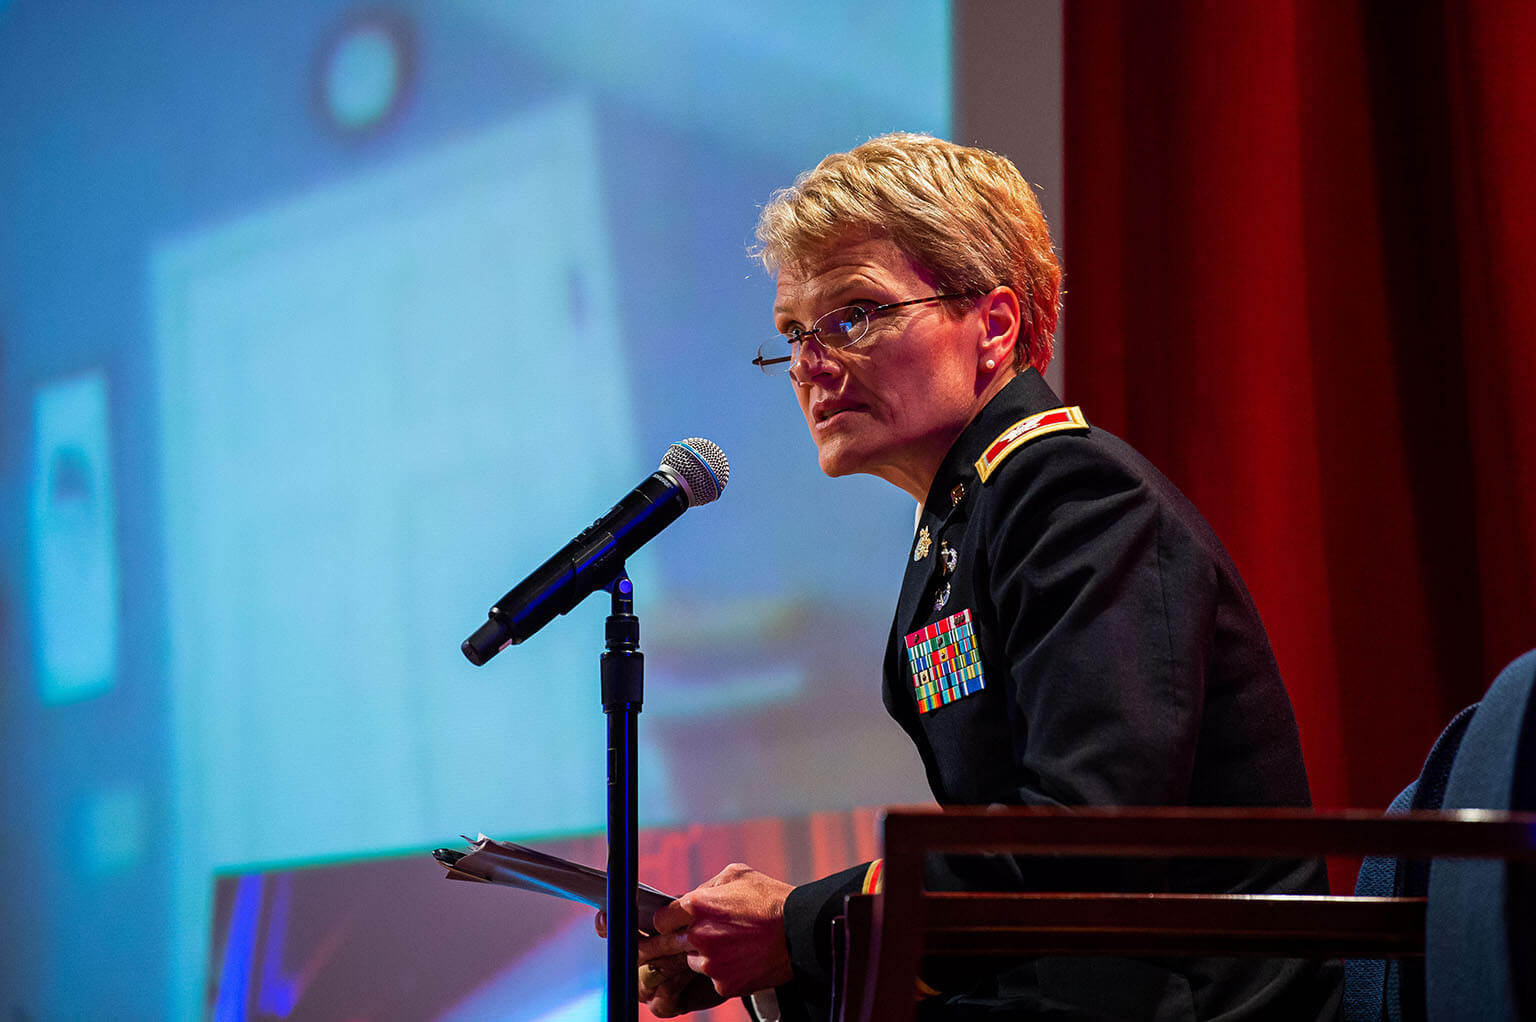 COL Suzanne Nielsen speaks at panel discussion, 'The Profession of Arms and the Preservation of Democratic Norms'